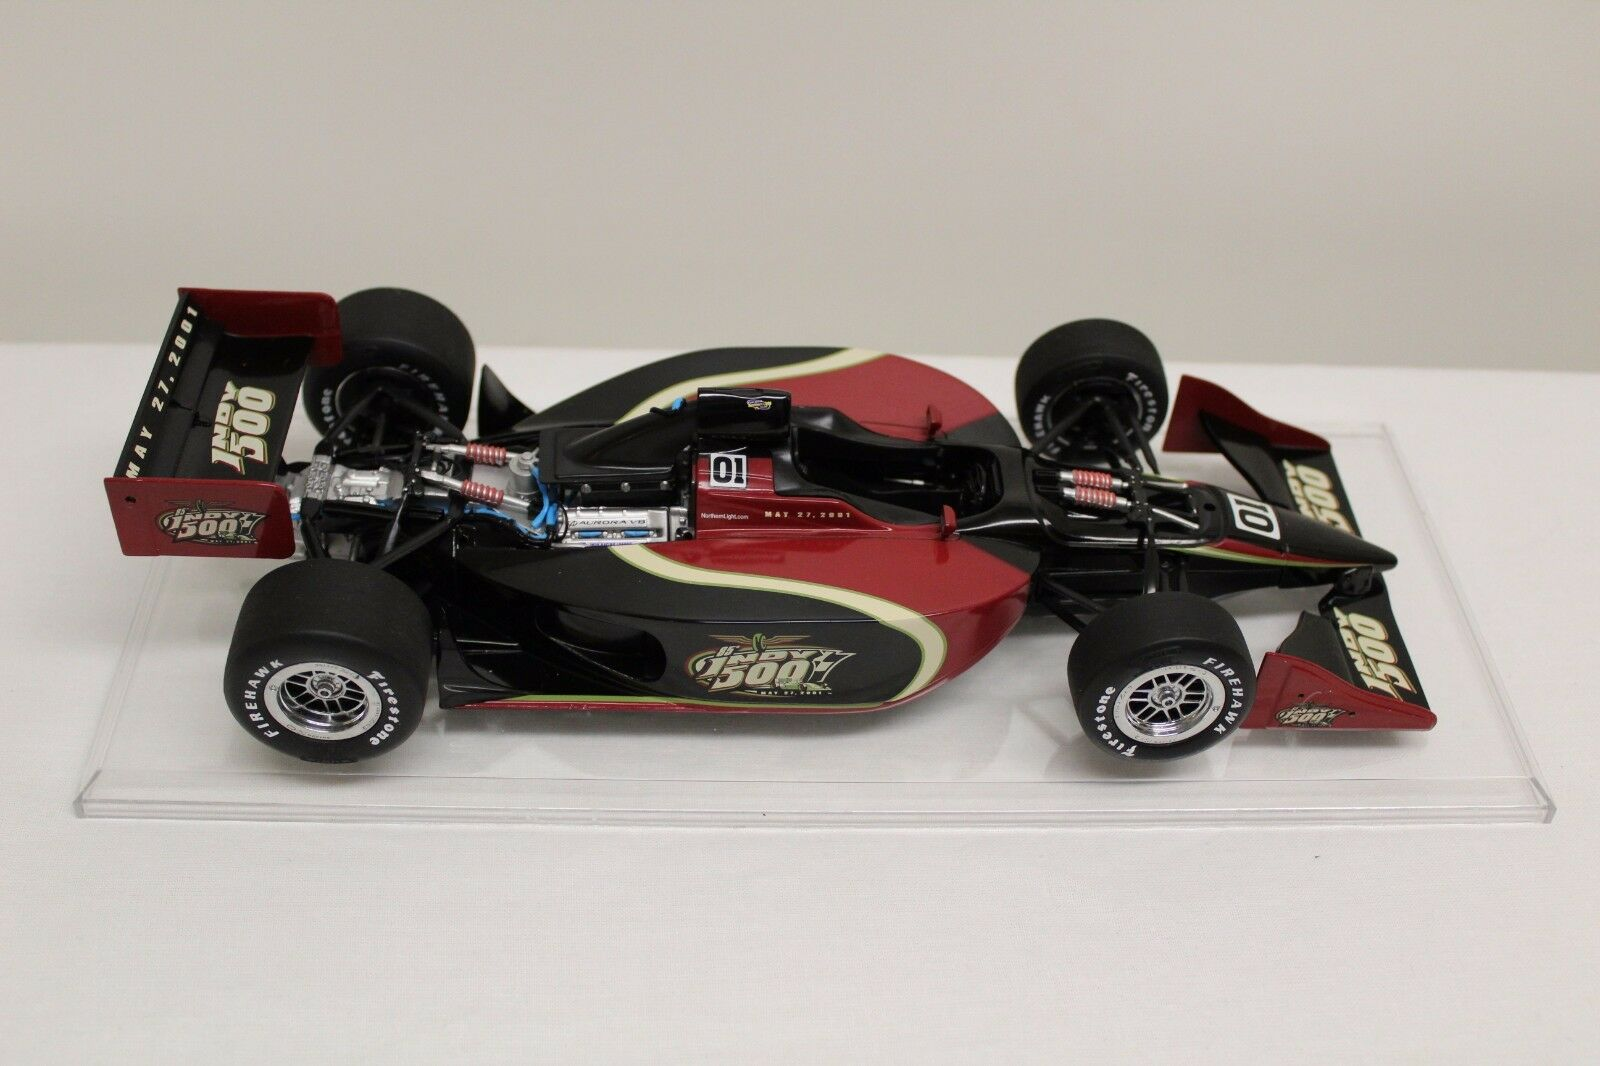 Indy Racing 500 1 18 2001 G-Force Event Car Action Indianapolis Limited Edition